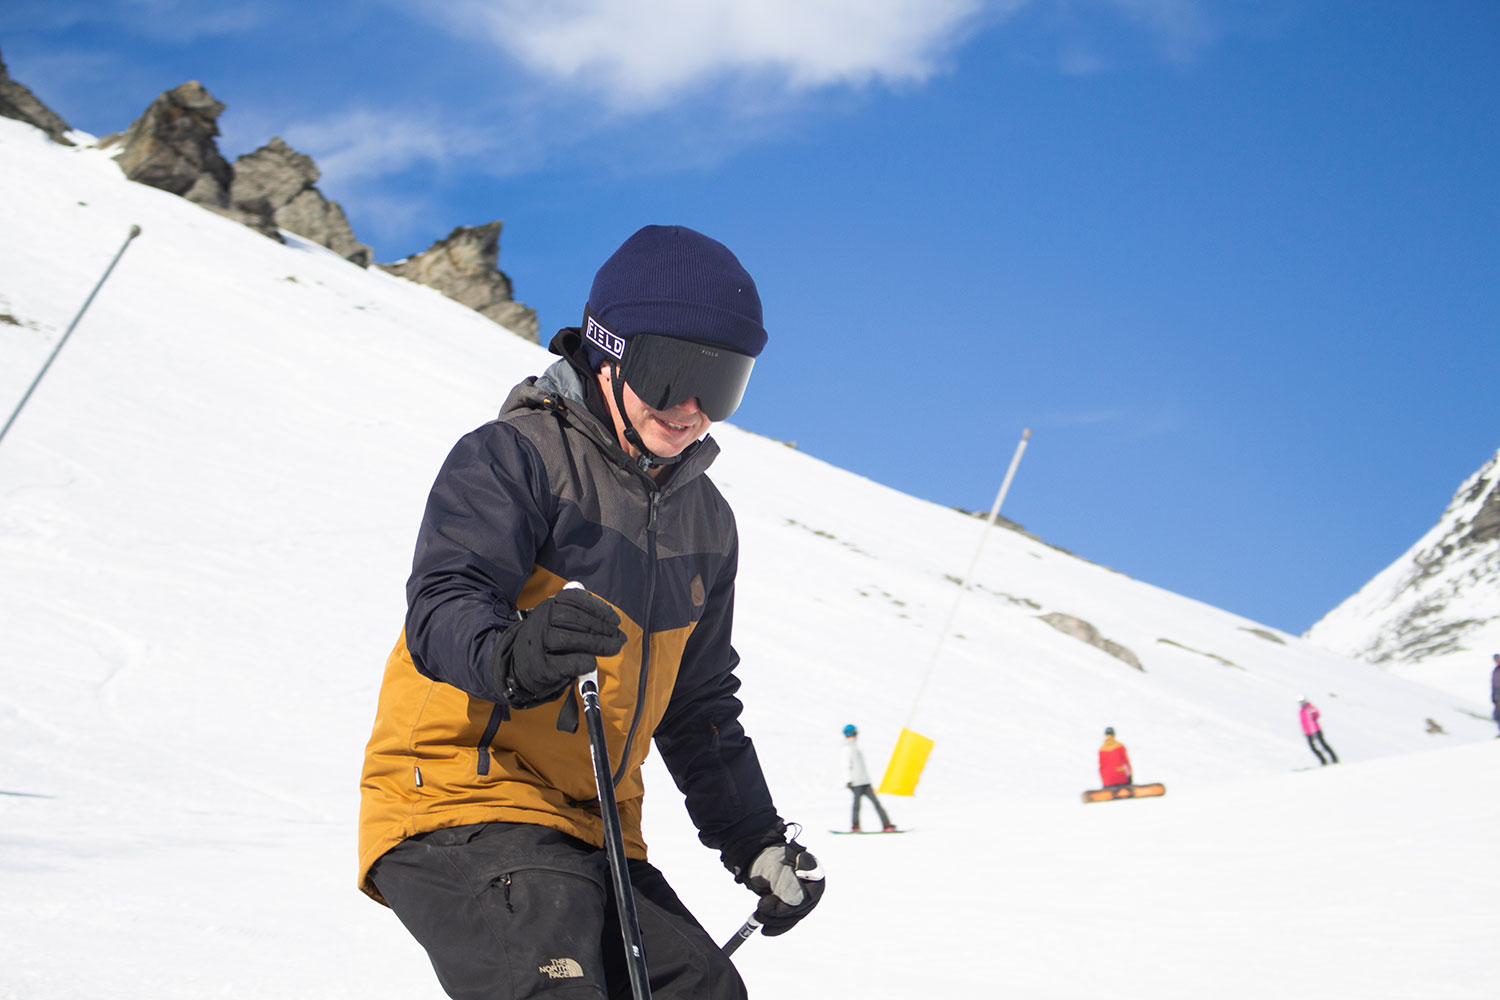 The Anti Ordinary A1 helmet out on the slopes. (Image: Robert Joseph/Anti Ordinary)